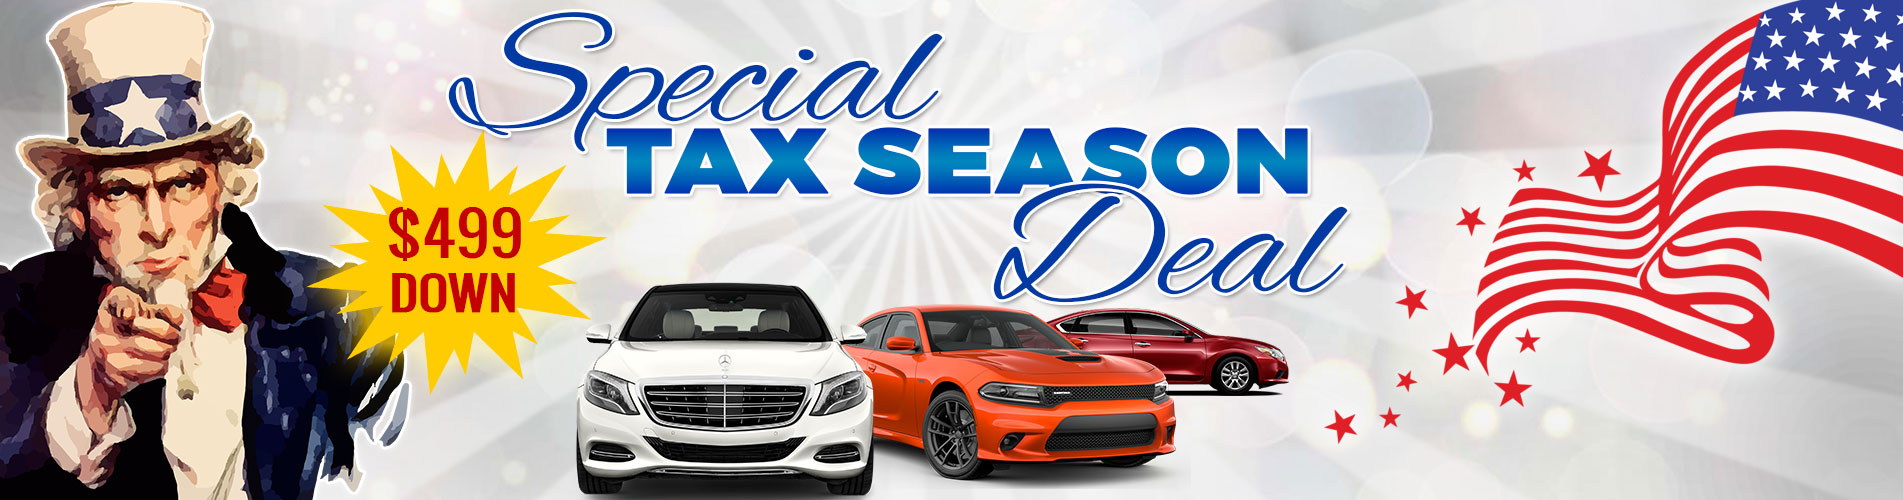 Special Tax Season Deals